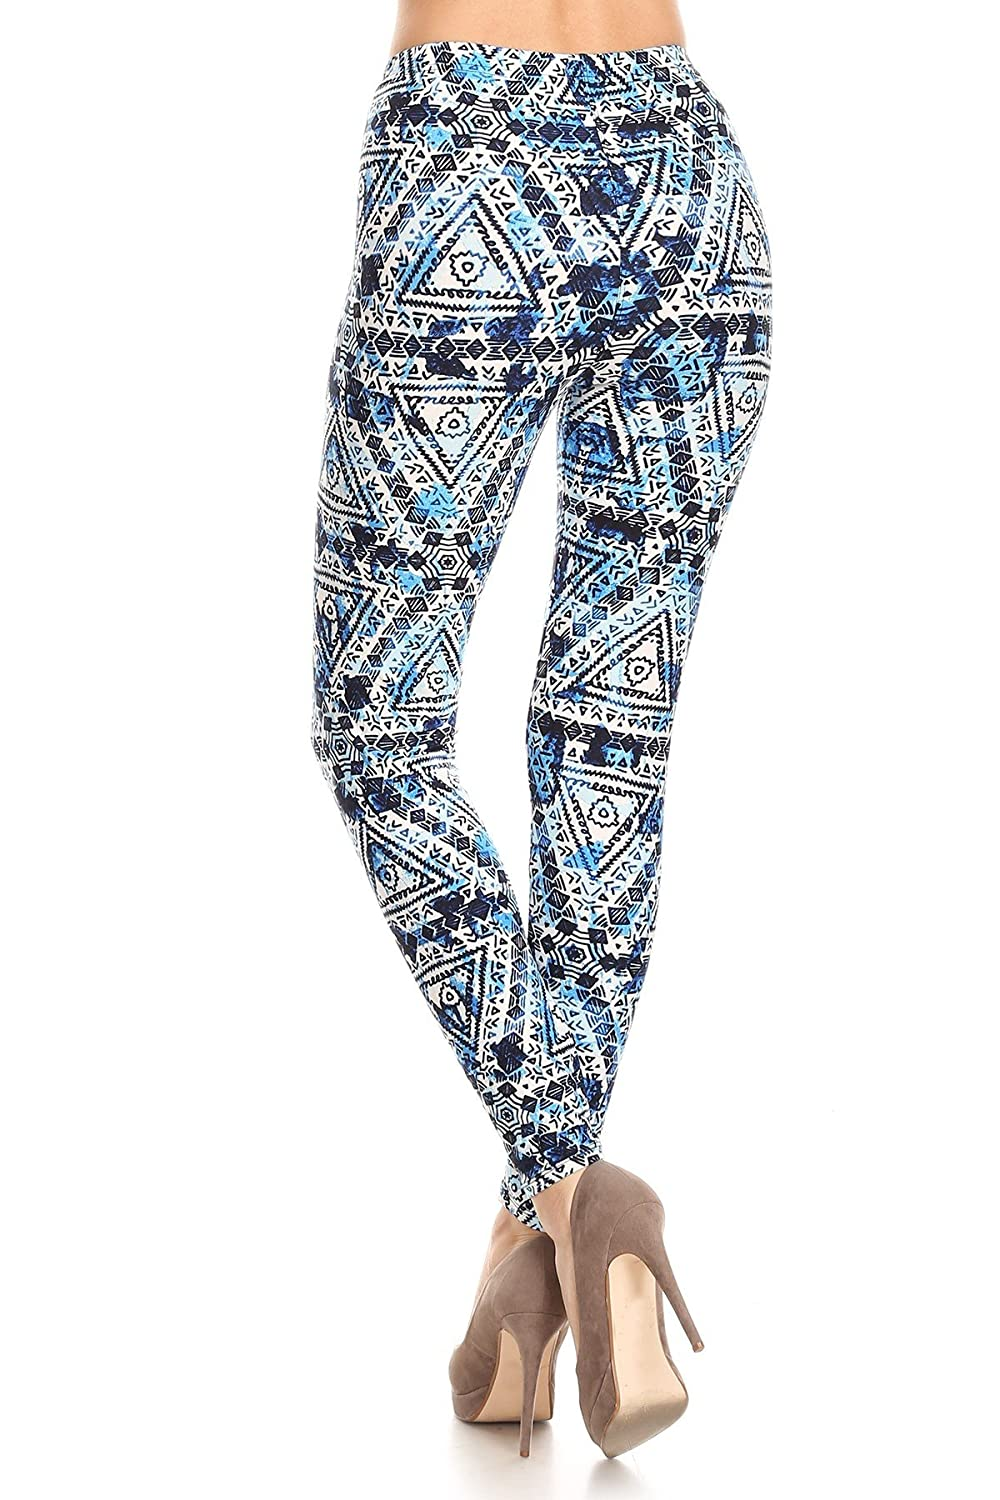 Expert Design Womens Regular Colorful Psychedelic Pattern Printed Legging Black Blue